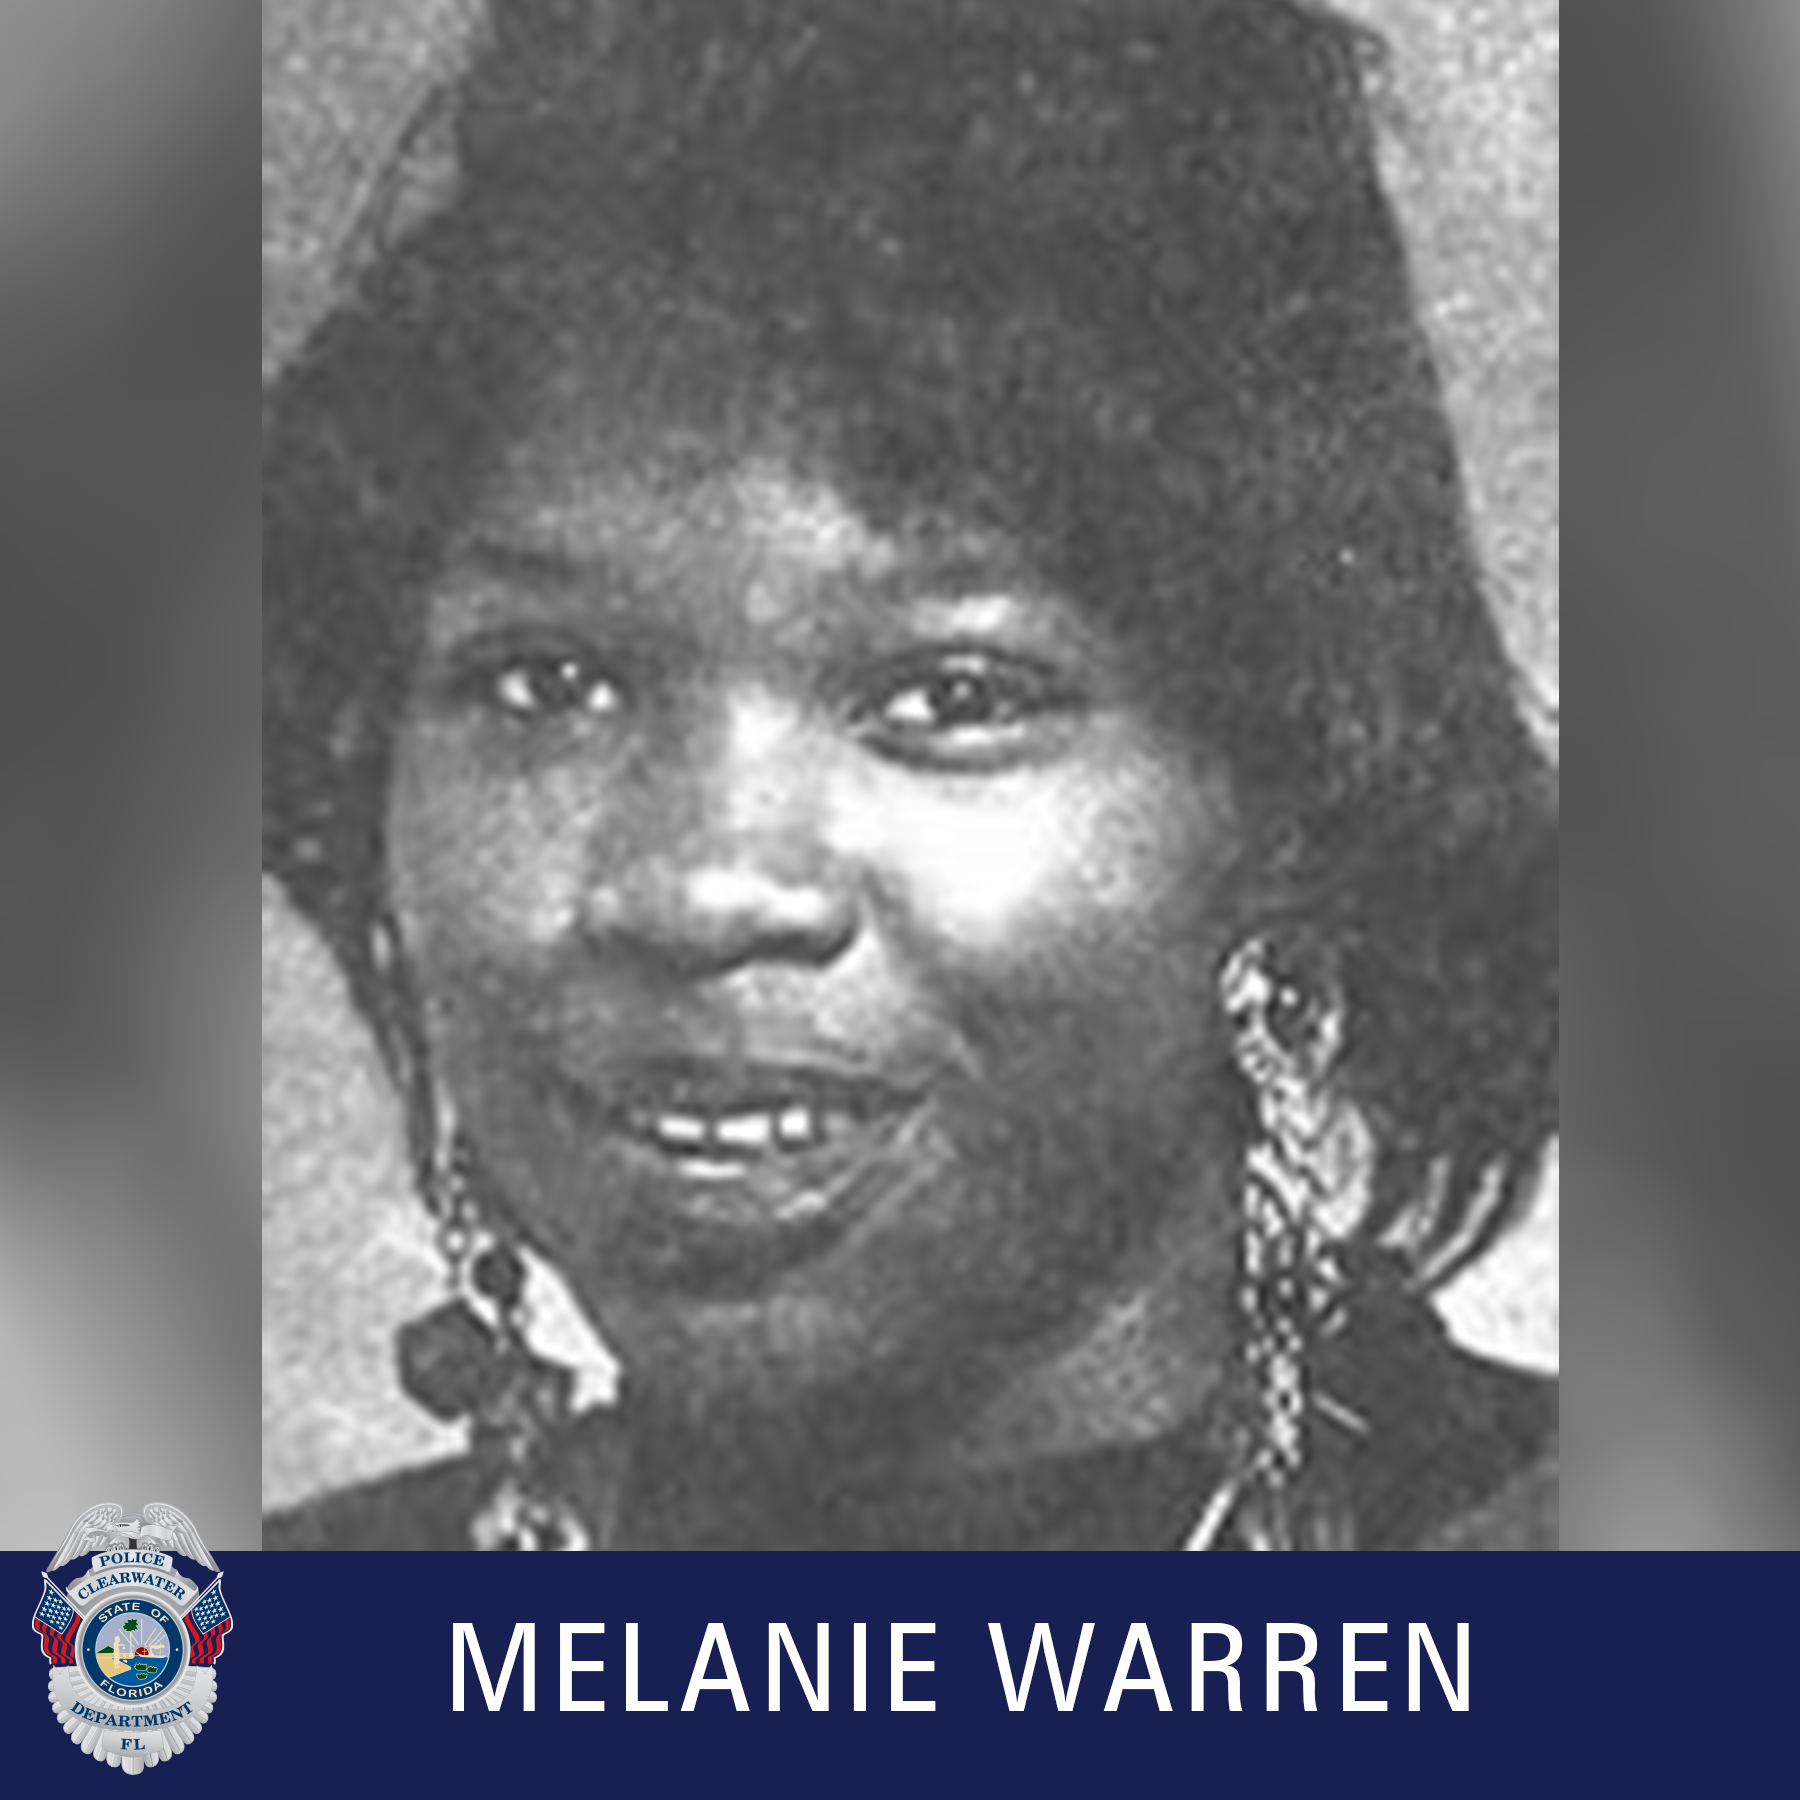 Melanie Warren, Clearwater Police Department shield, Black and white photo of female smiling